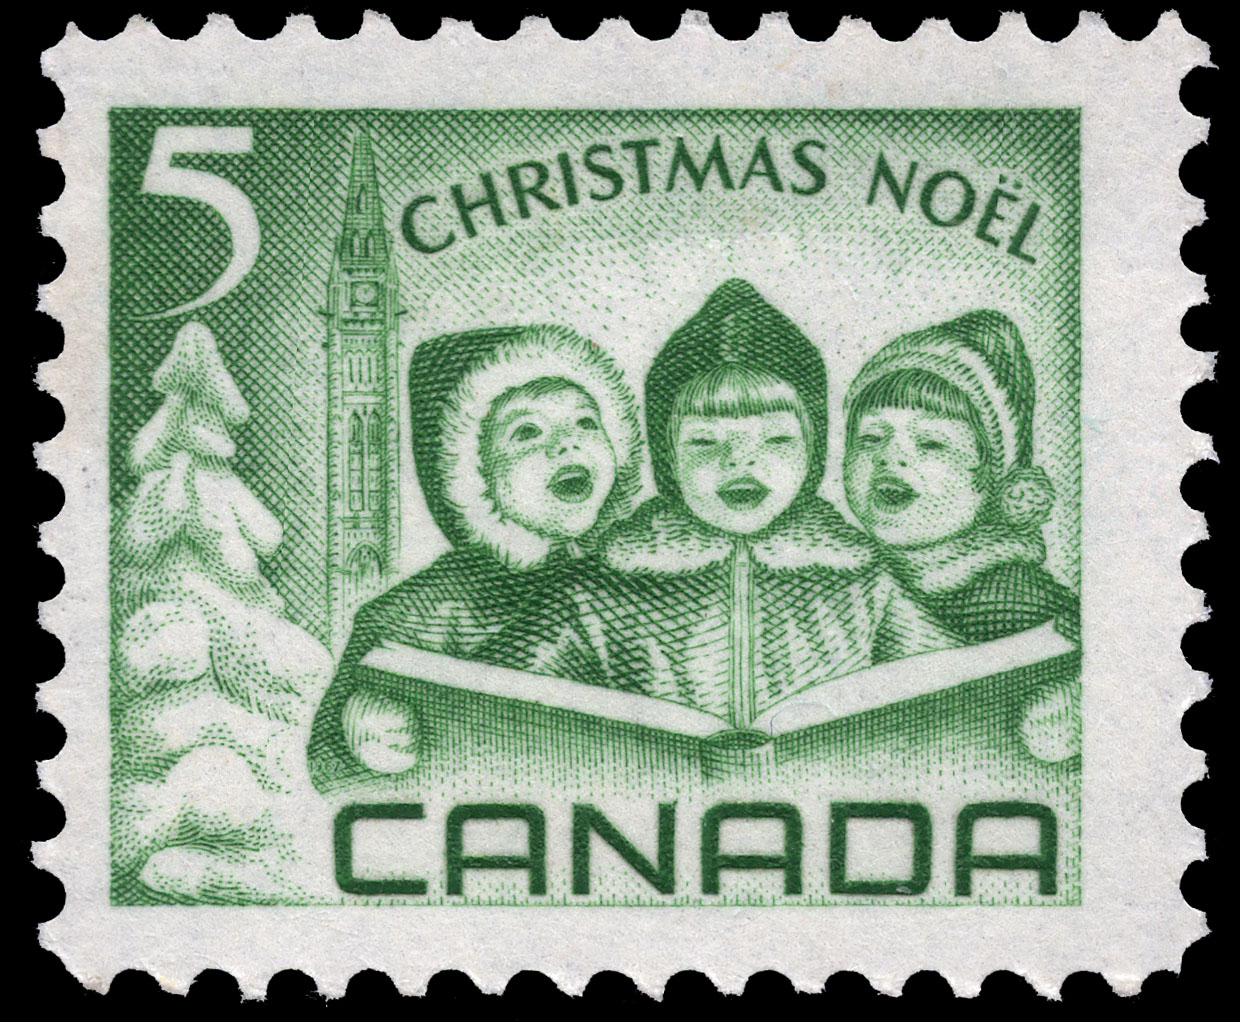 Children singing Carols Canada Postage Stamp